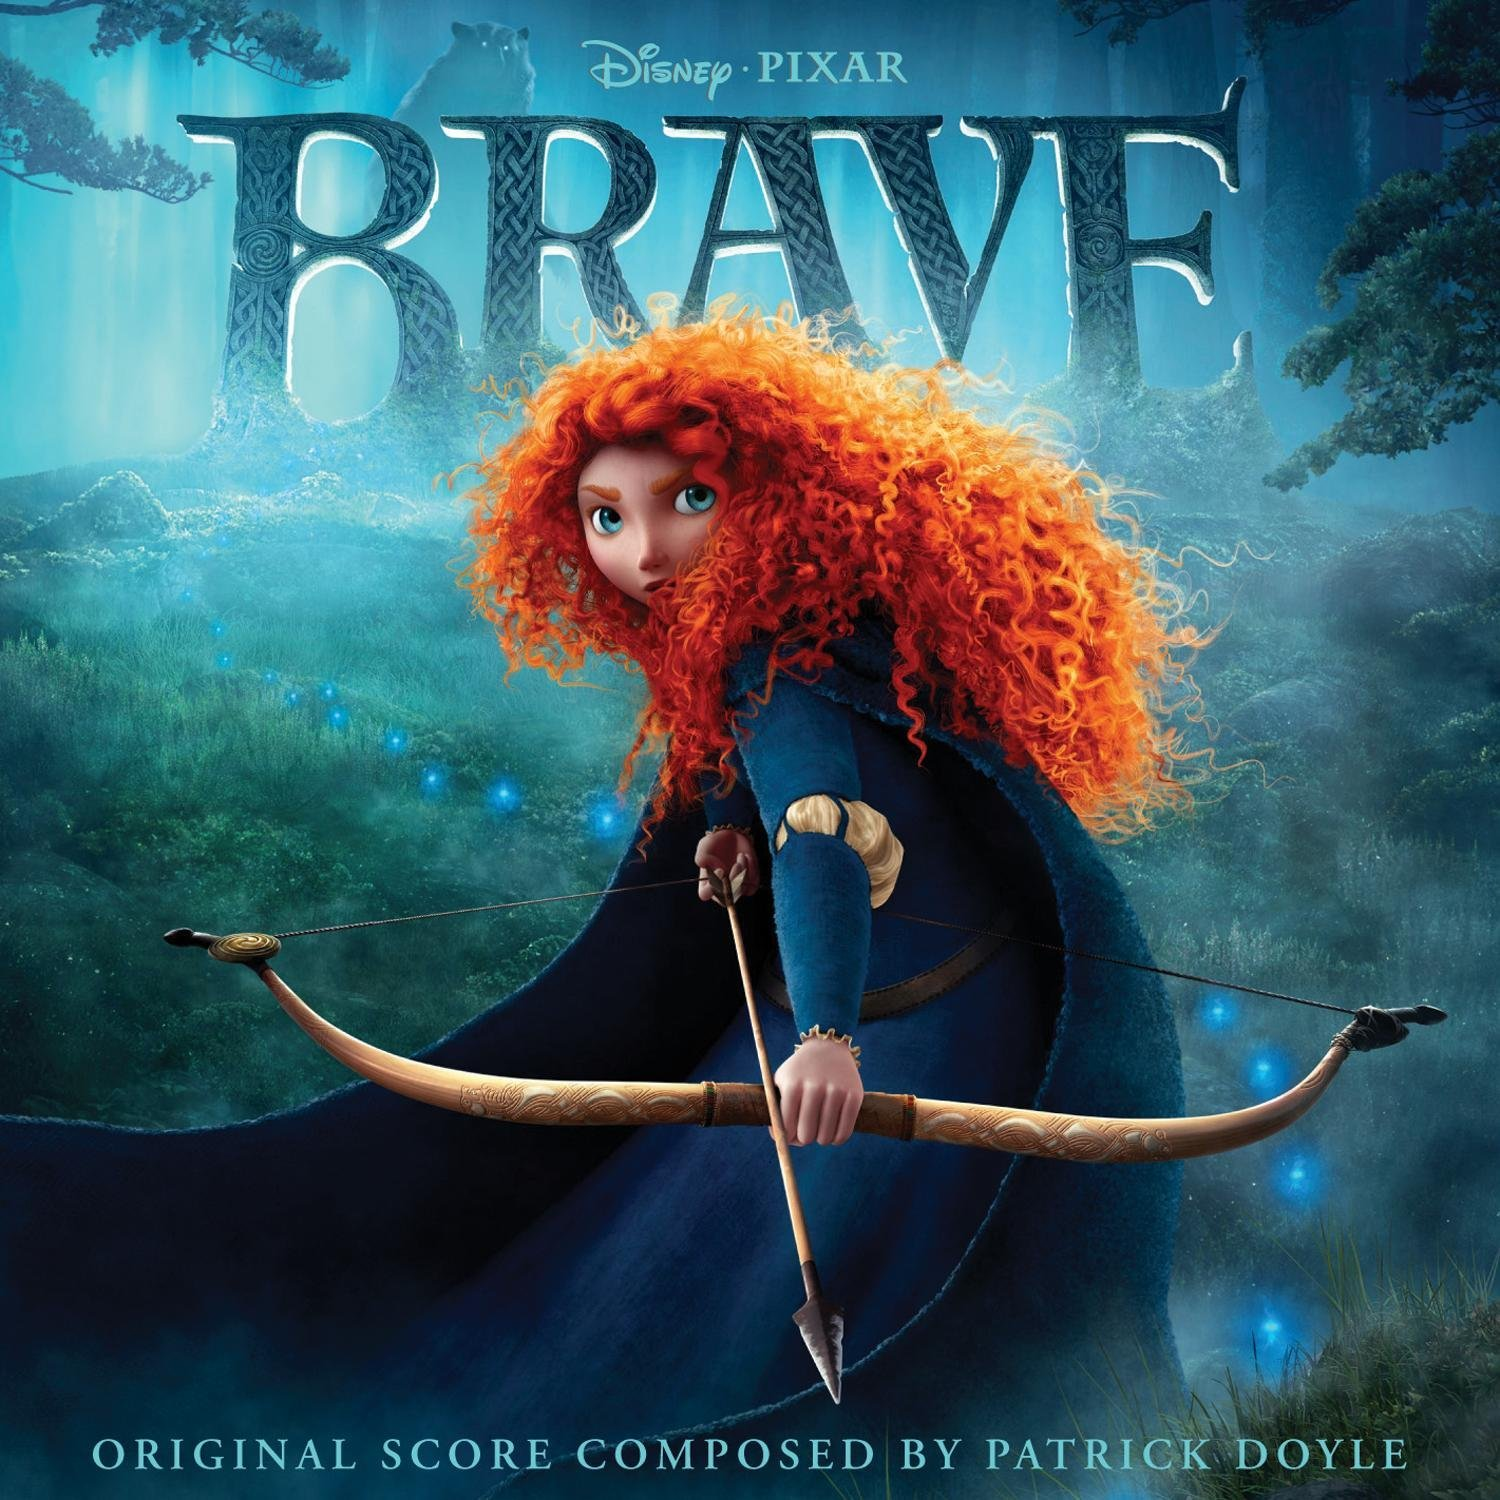 Pixar disney bande originale soundtrack rebelle brave